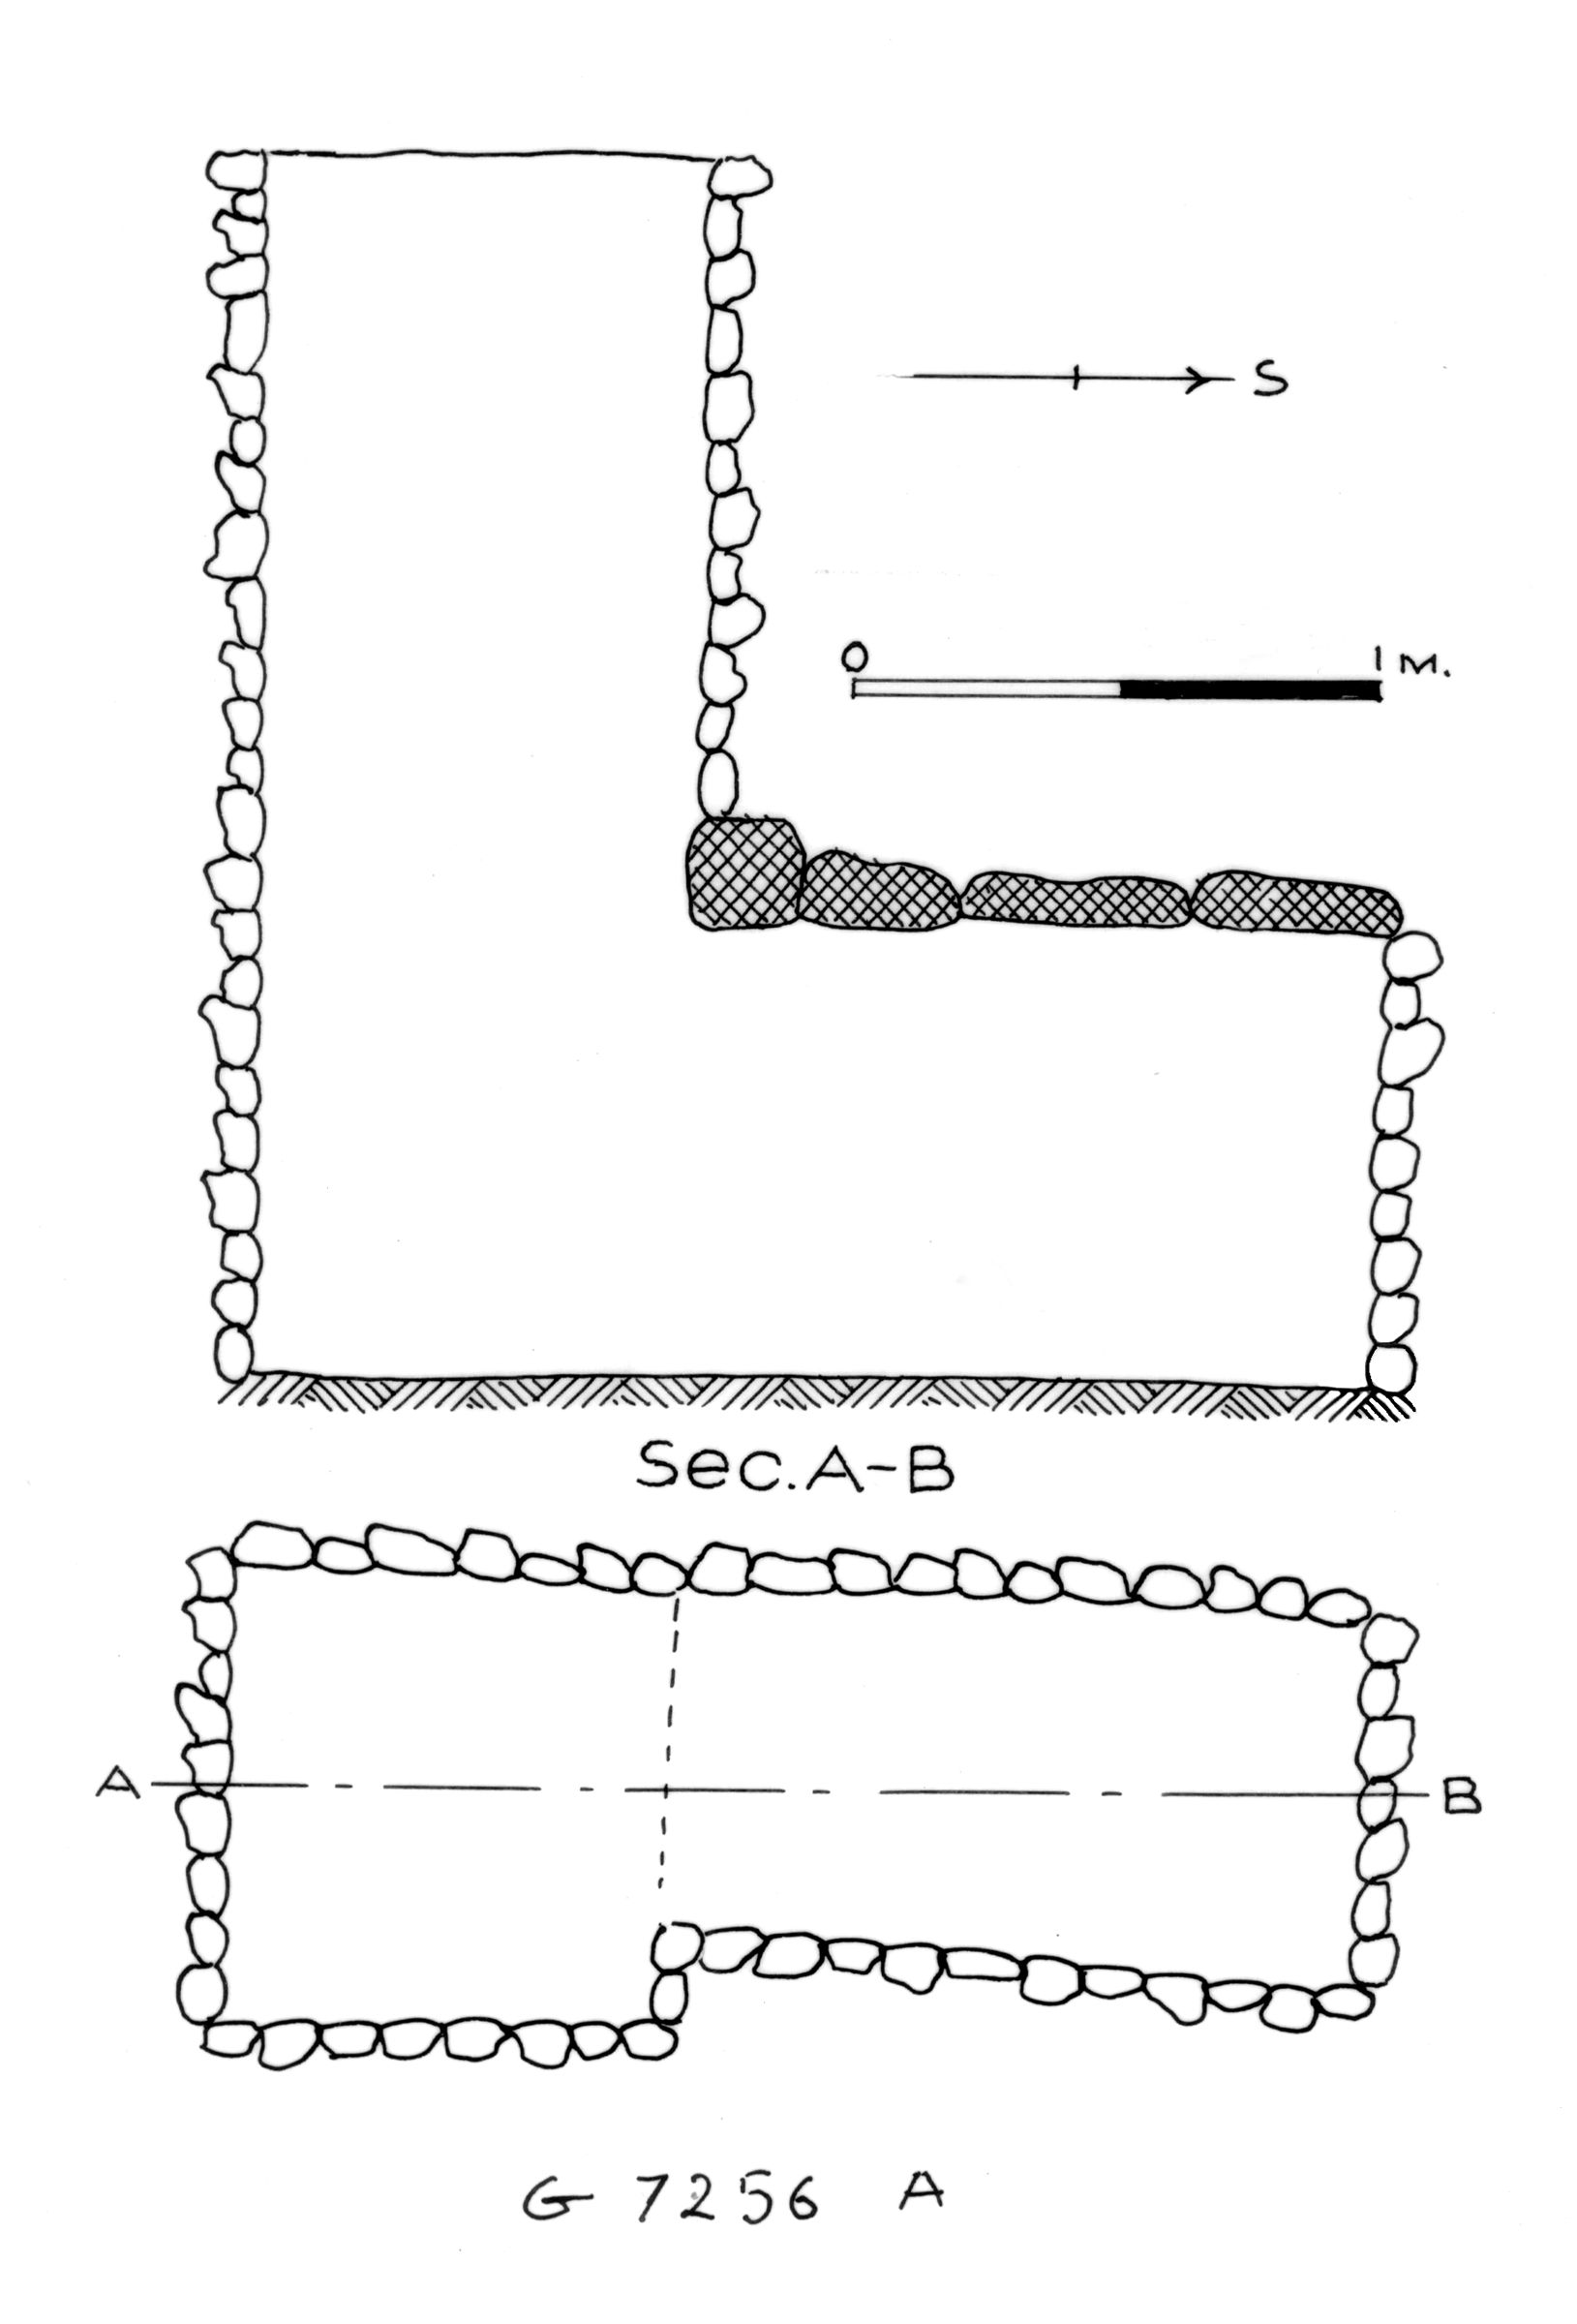 Maps and plans: G 7256, Shaft A